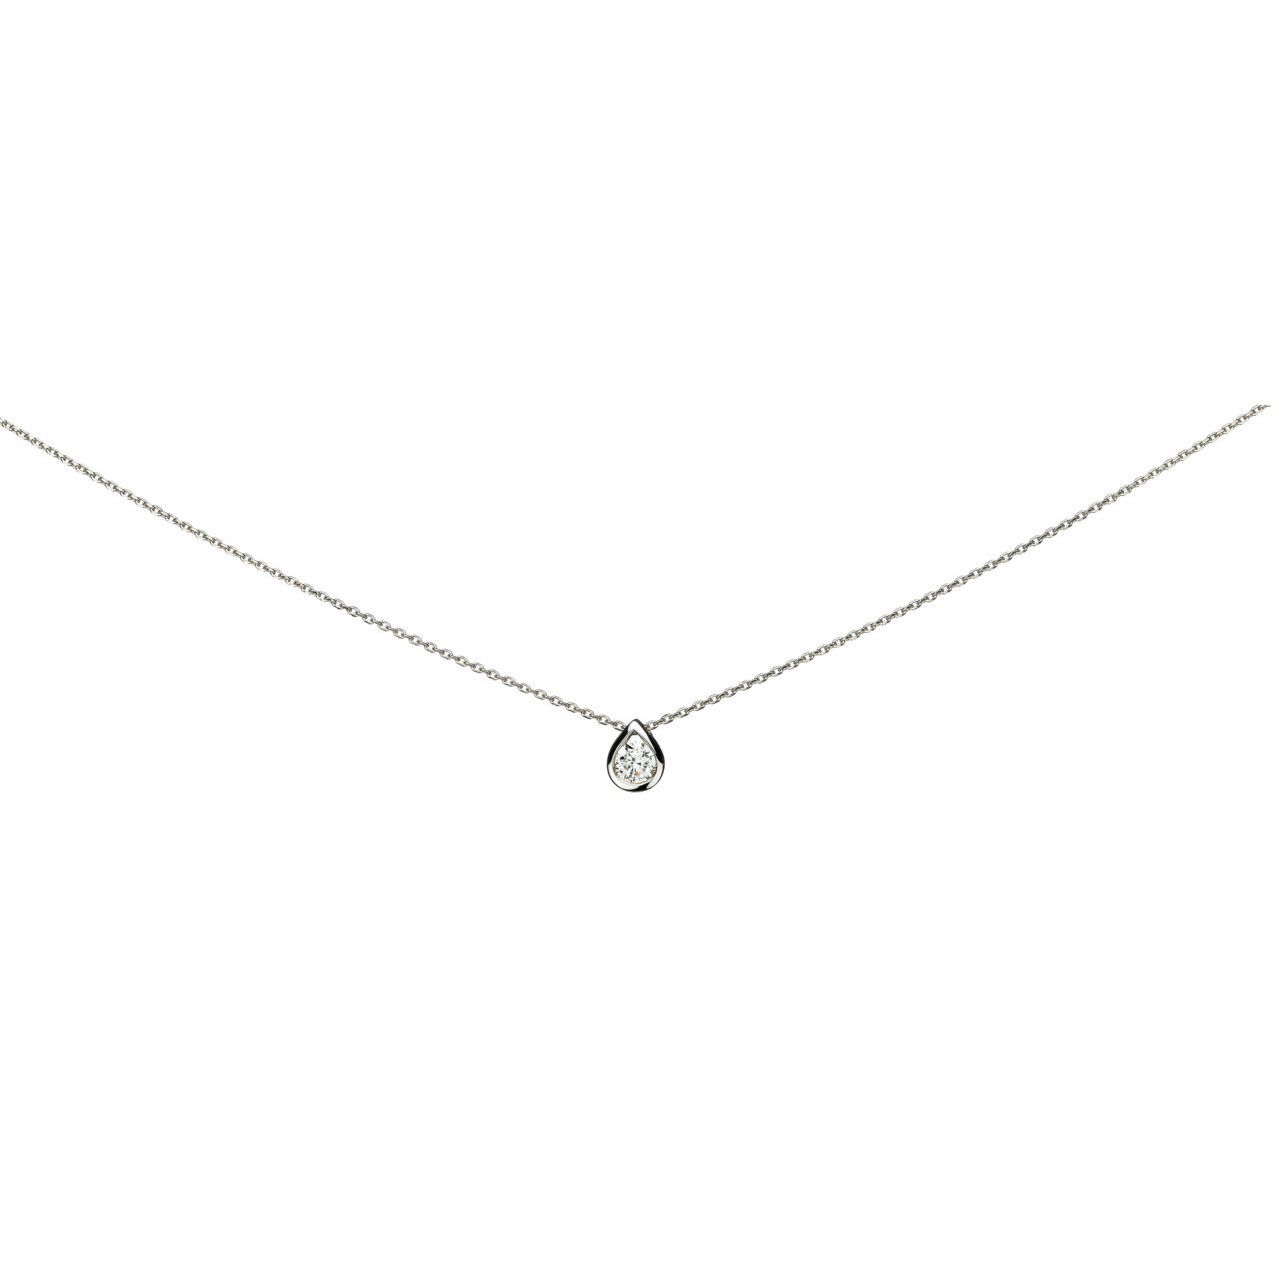 Collier en or blanc et diamant de 0.10ct